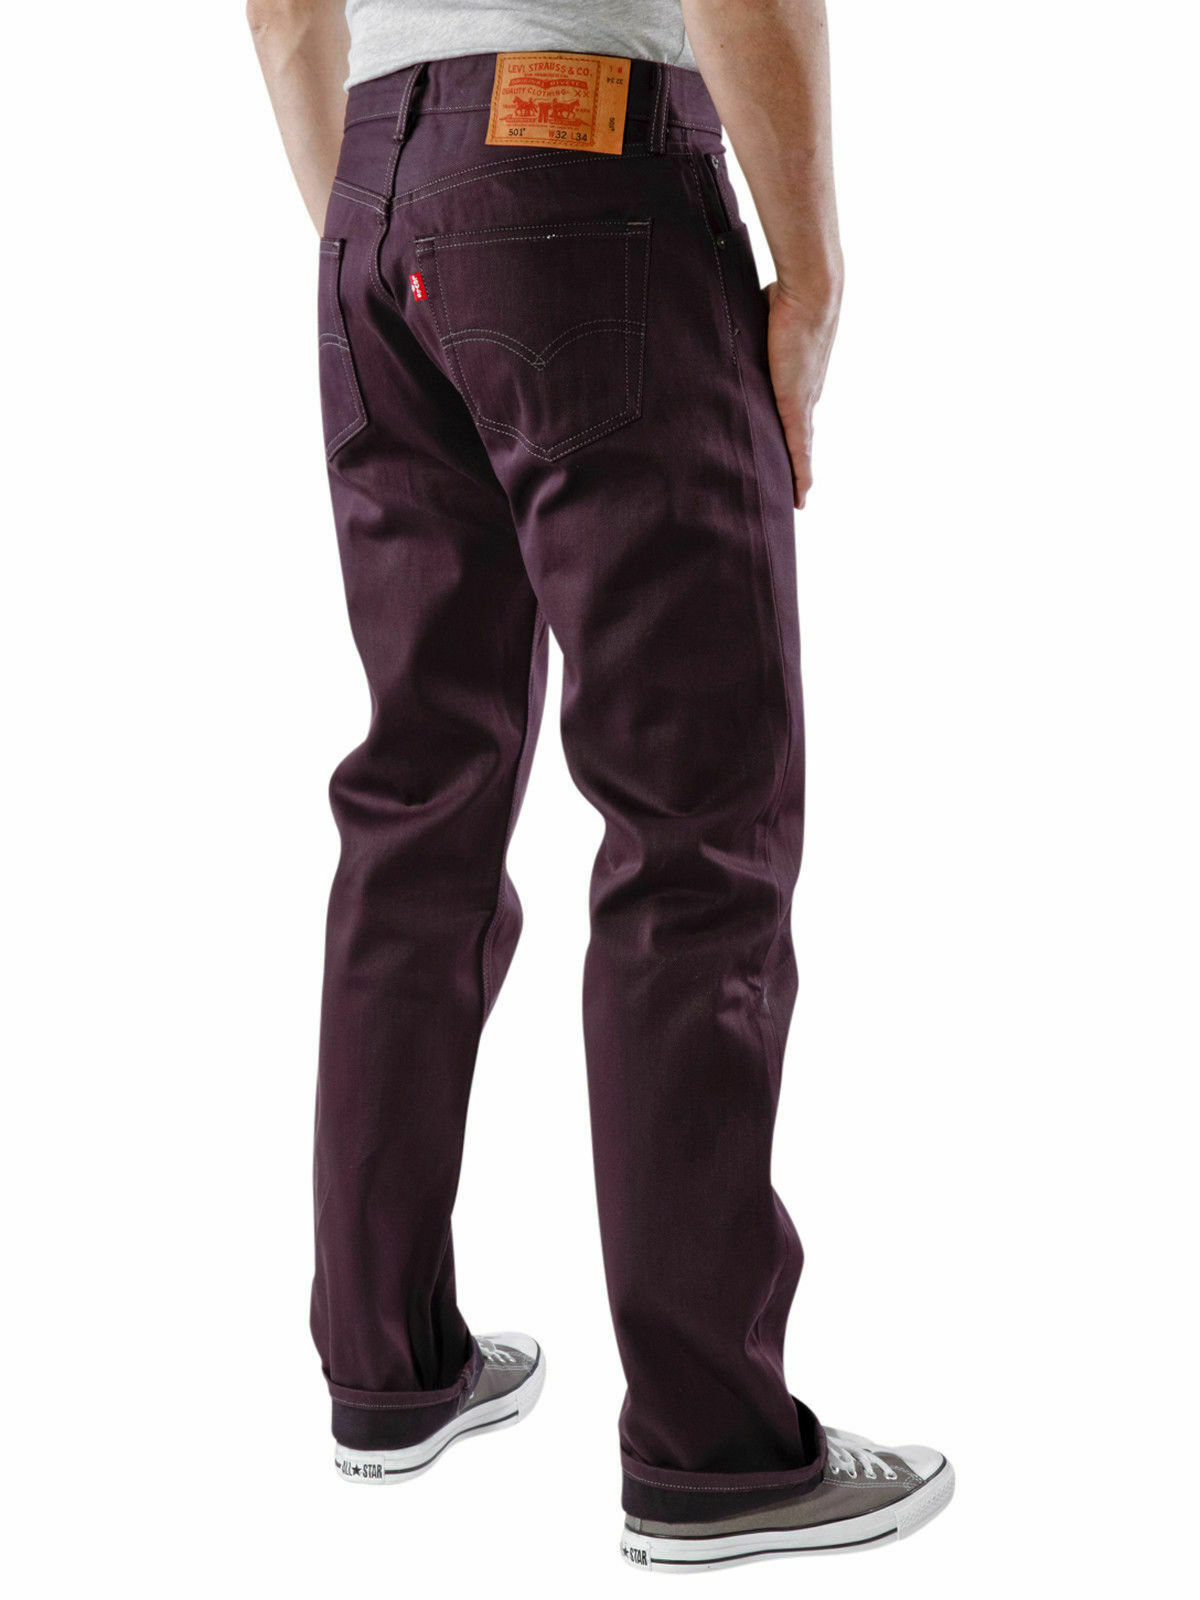 New Levi's Strauss 501 Men's Original Straight Leg Eggplant Ridid Jeans 501-1498